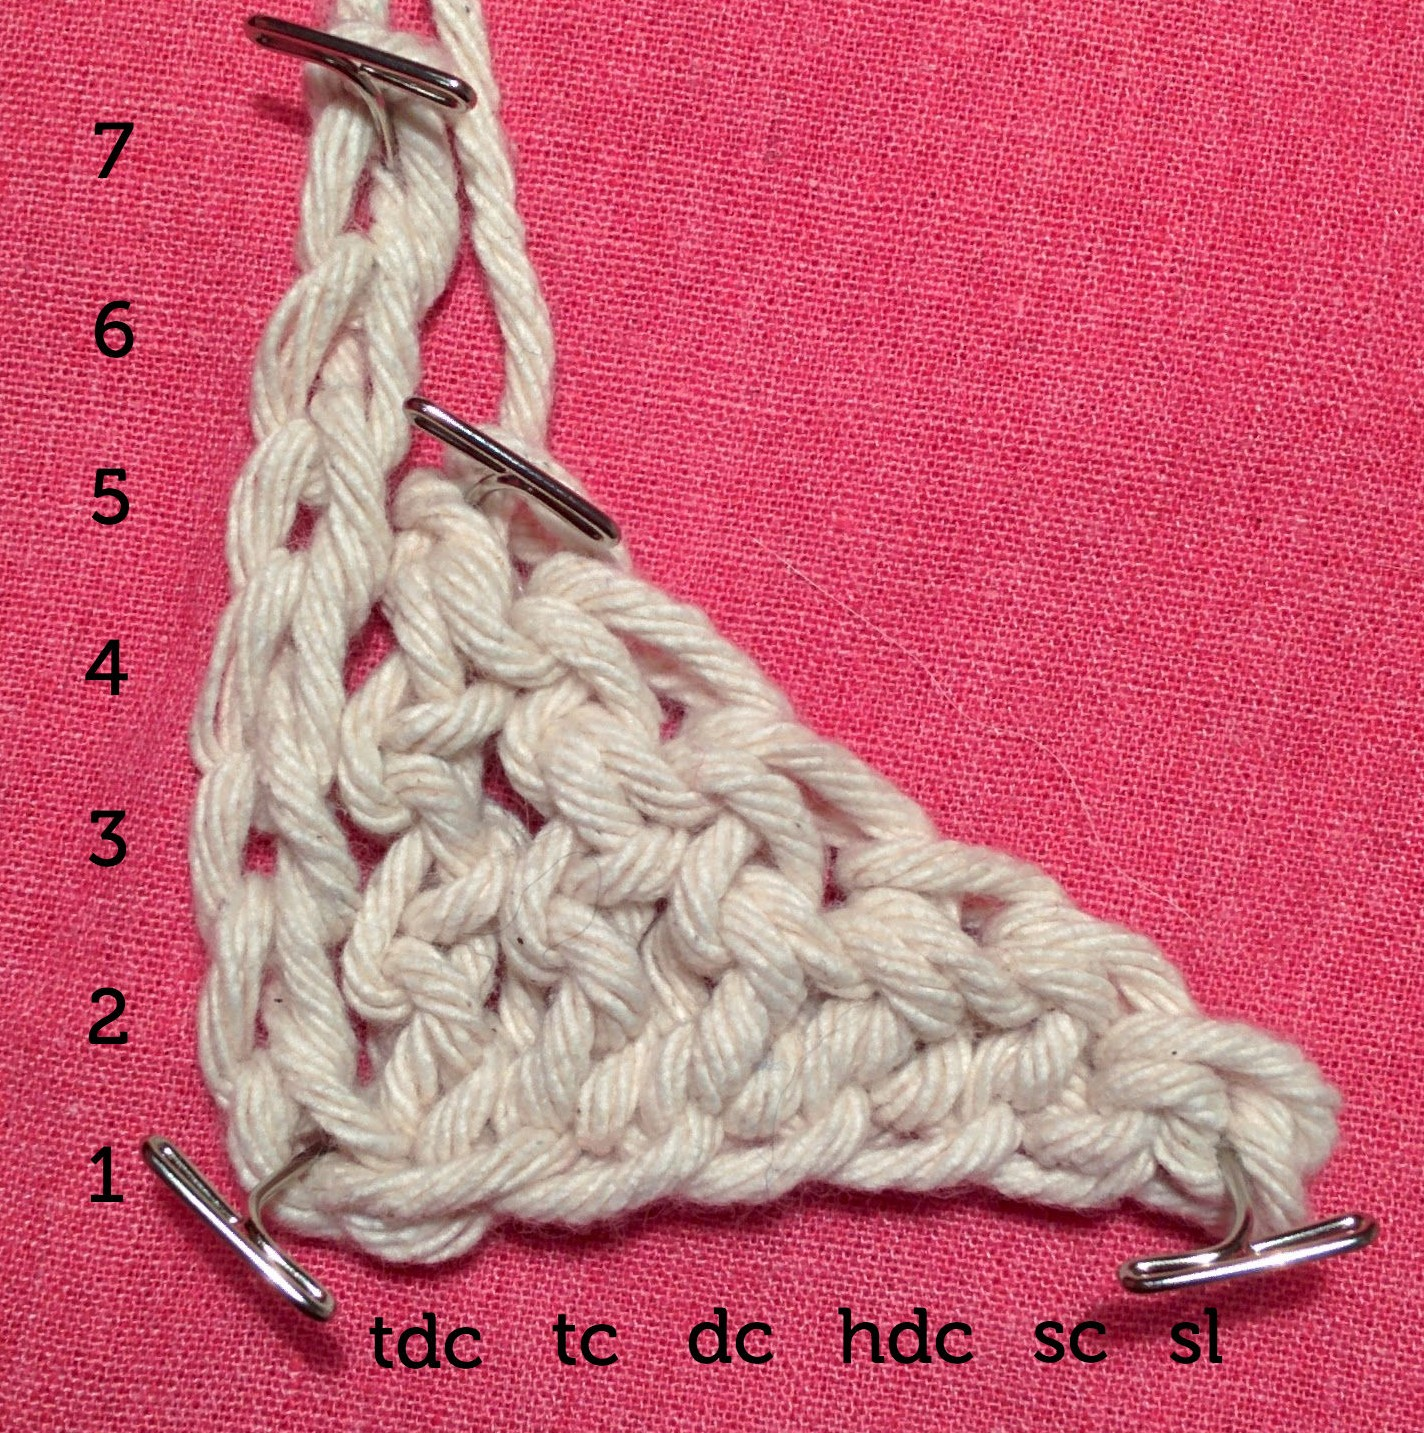 Crochet Stitches Hdc : Extended-single crochet vs half-double crochet